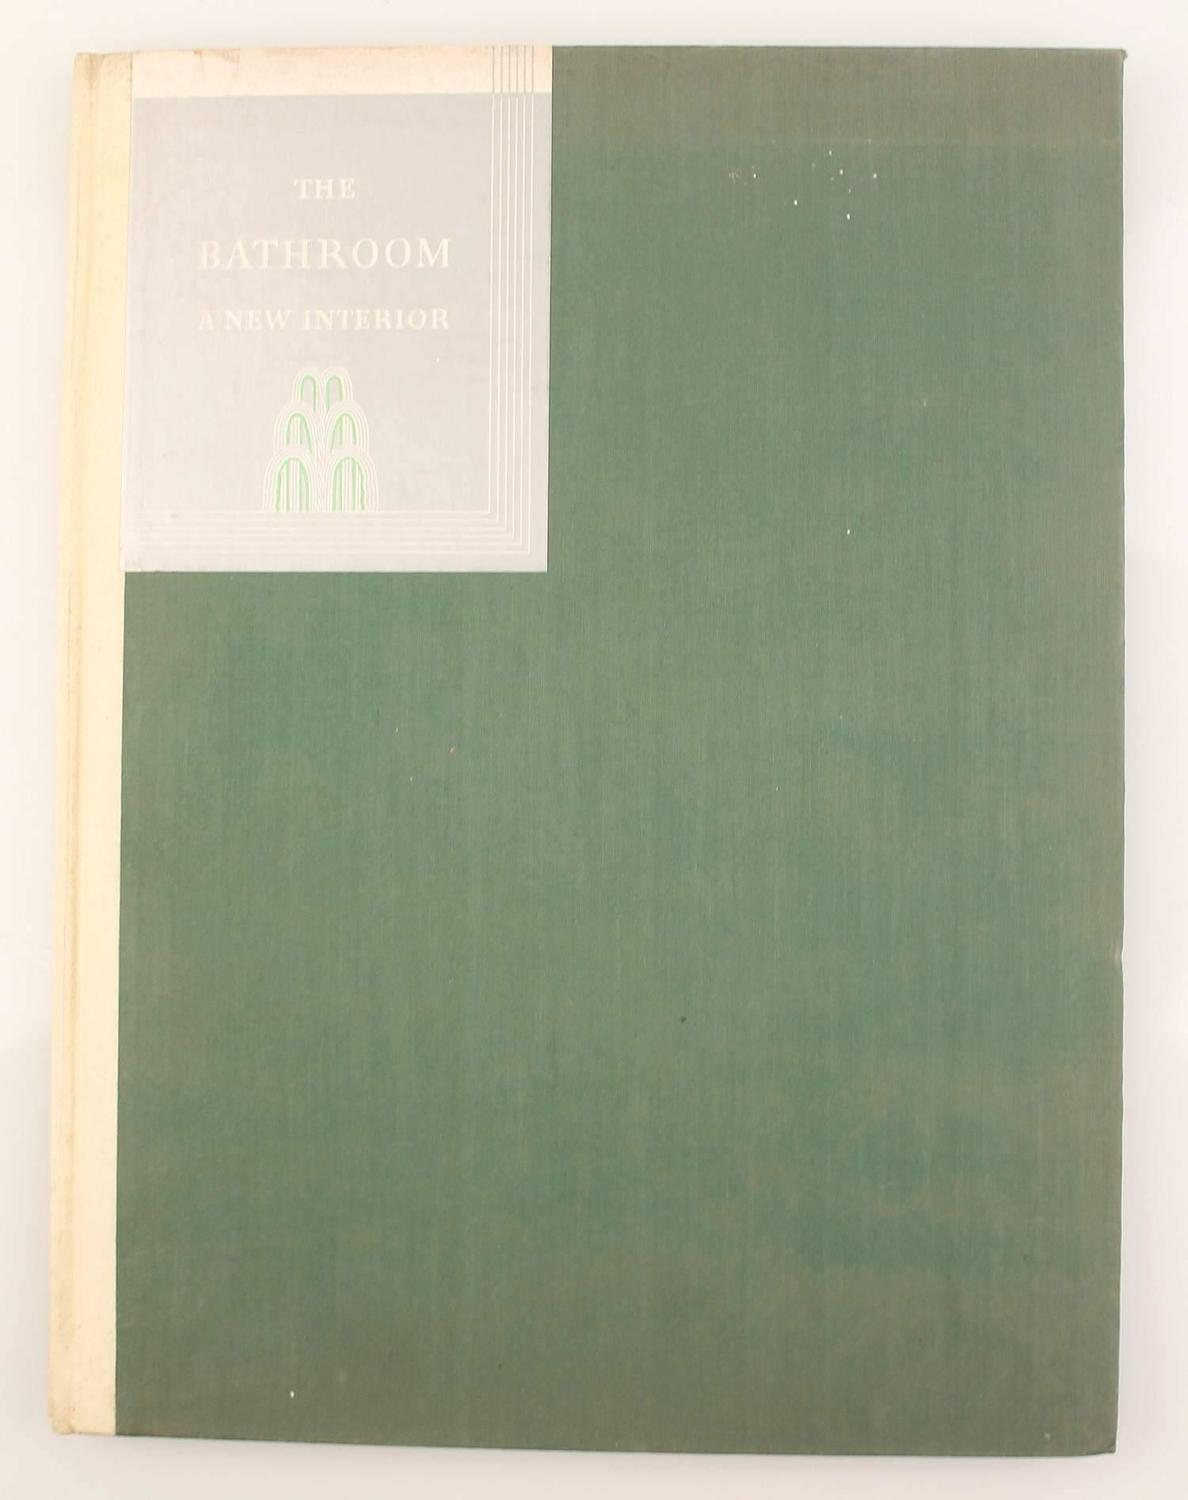 1931 Art Deco Bathroom Interior Design Architecture Reference Book For Sale At 1stdibs